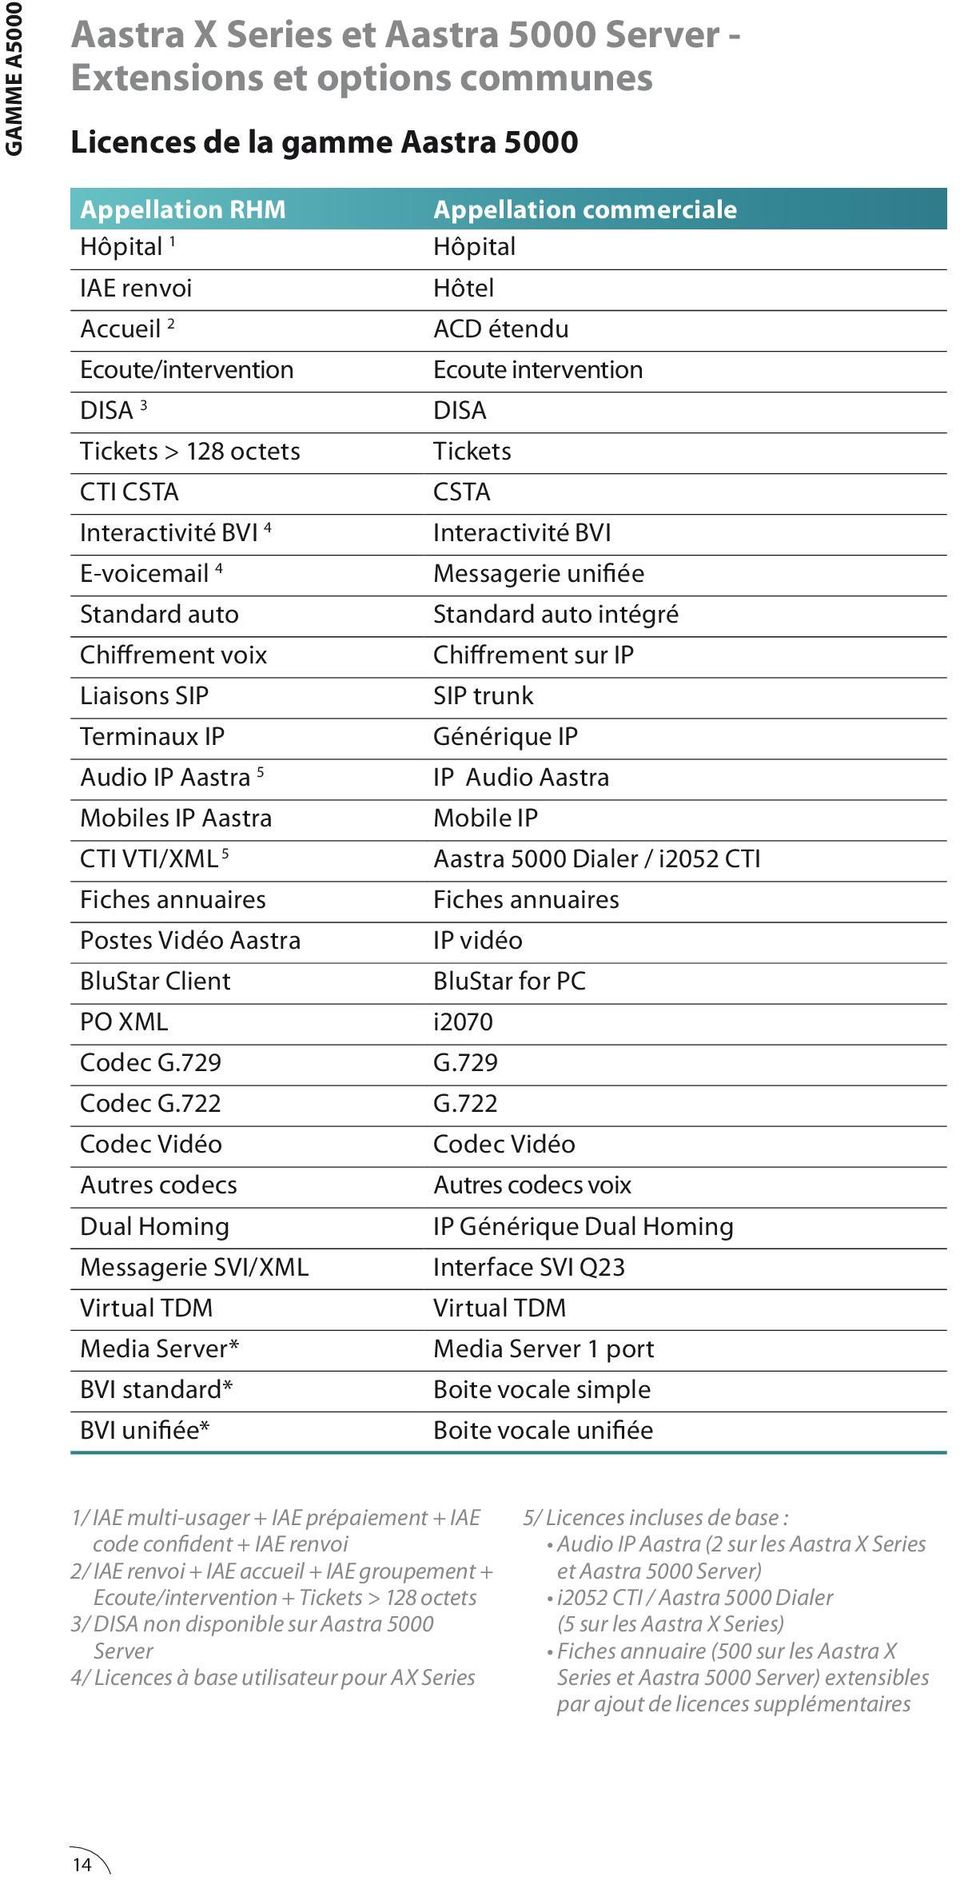 Standard auto intégré Chiffrement voix Chiffrement sur IP Liaisons SIP SIP trunk Terminaux IP Générique IP Audio IP Aastra 5 IP Audio Aastra Mobiles IP Aastra Mobile IP CTI VTI/XML 5 Aastra 5000